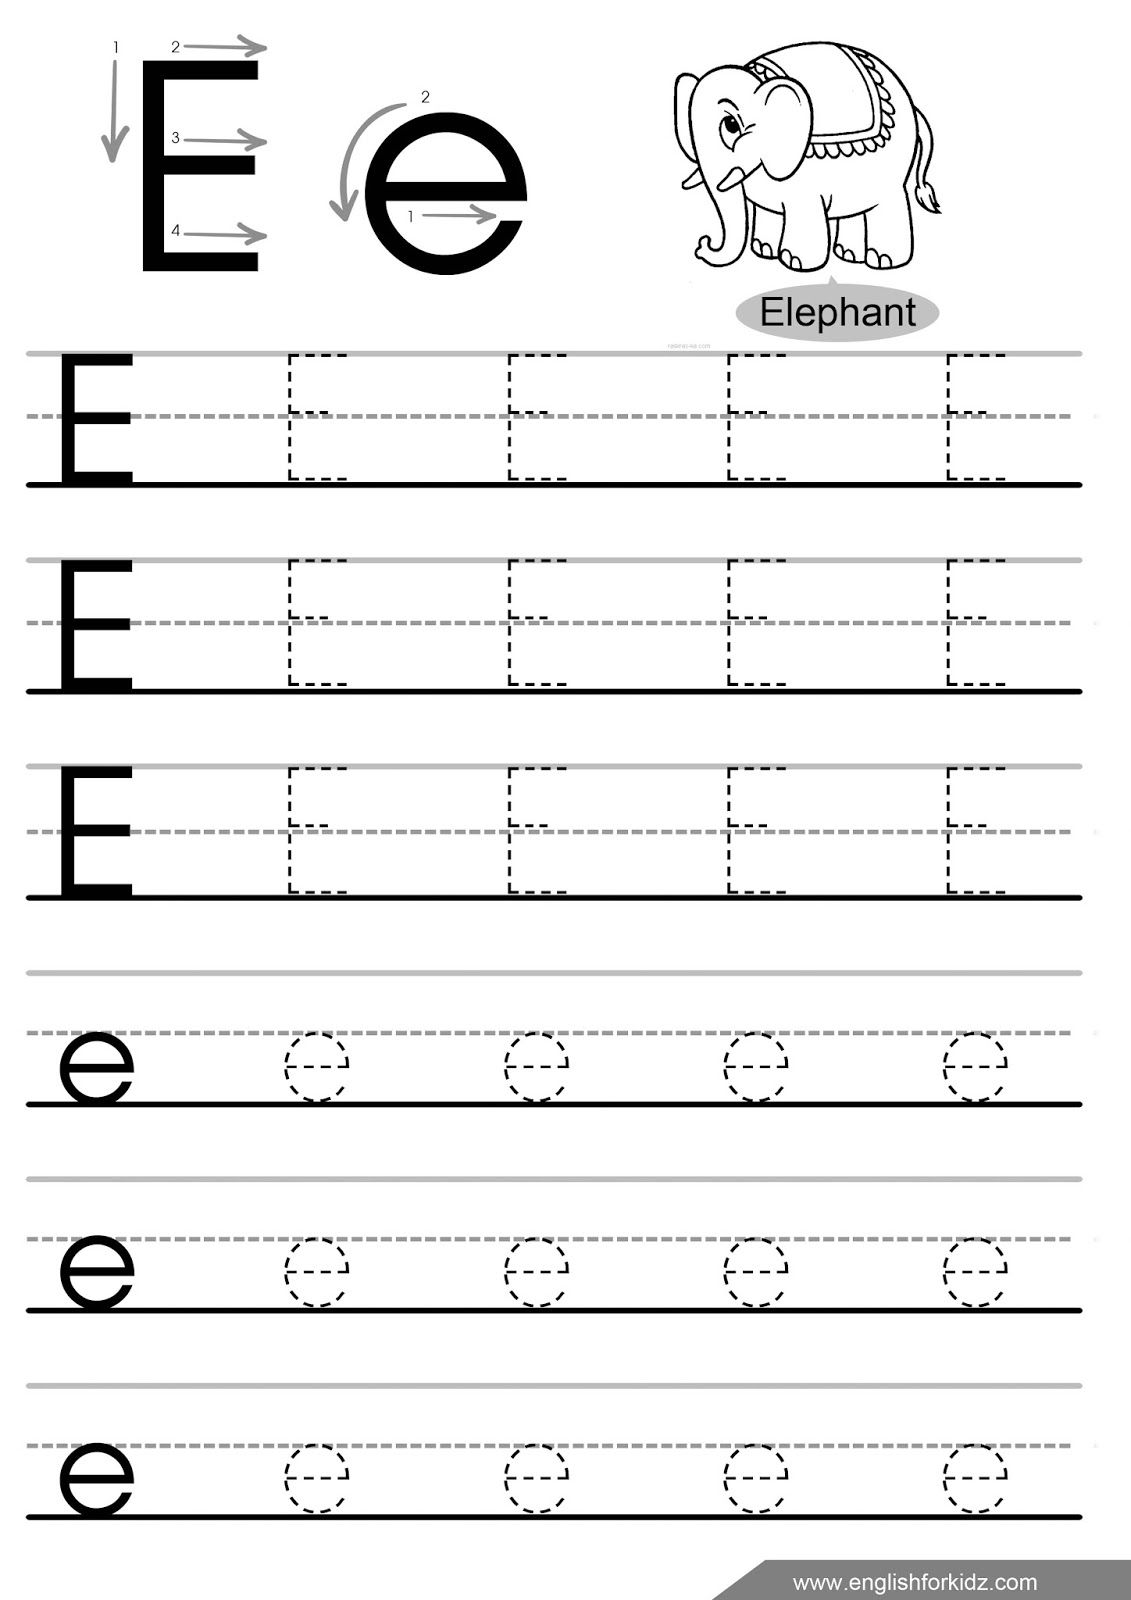 Image Result For Spanish Vowel Ee Worksheet With Images